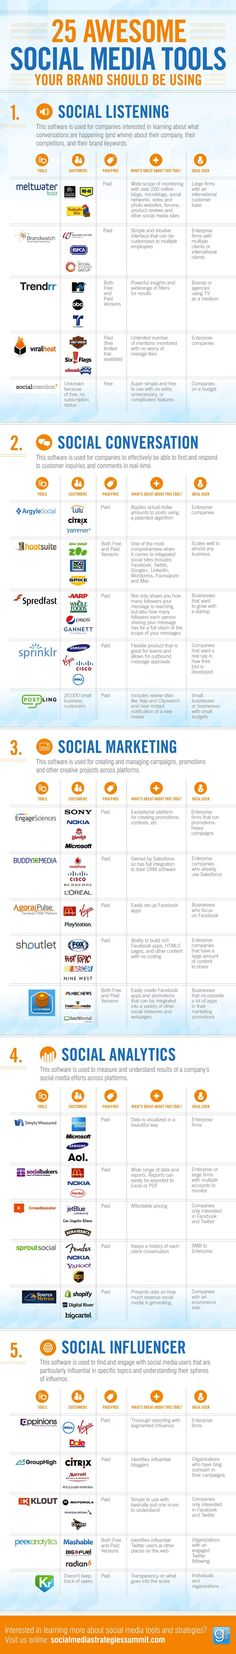 25 Awesome Social Media Tools Your Brand Should Be Using #infographic